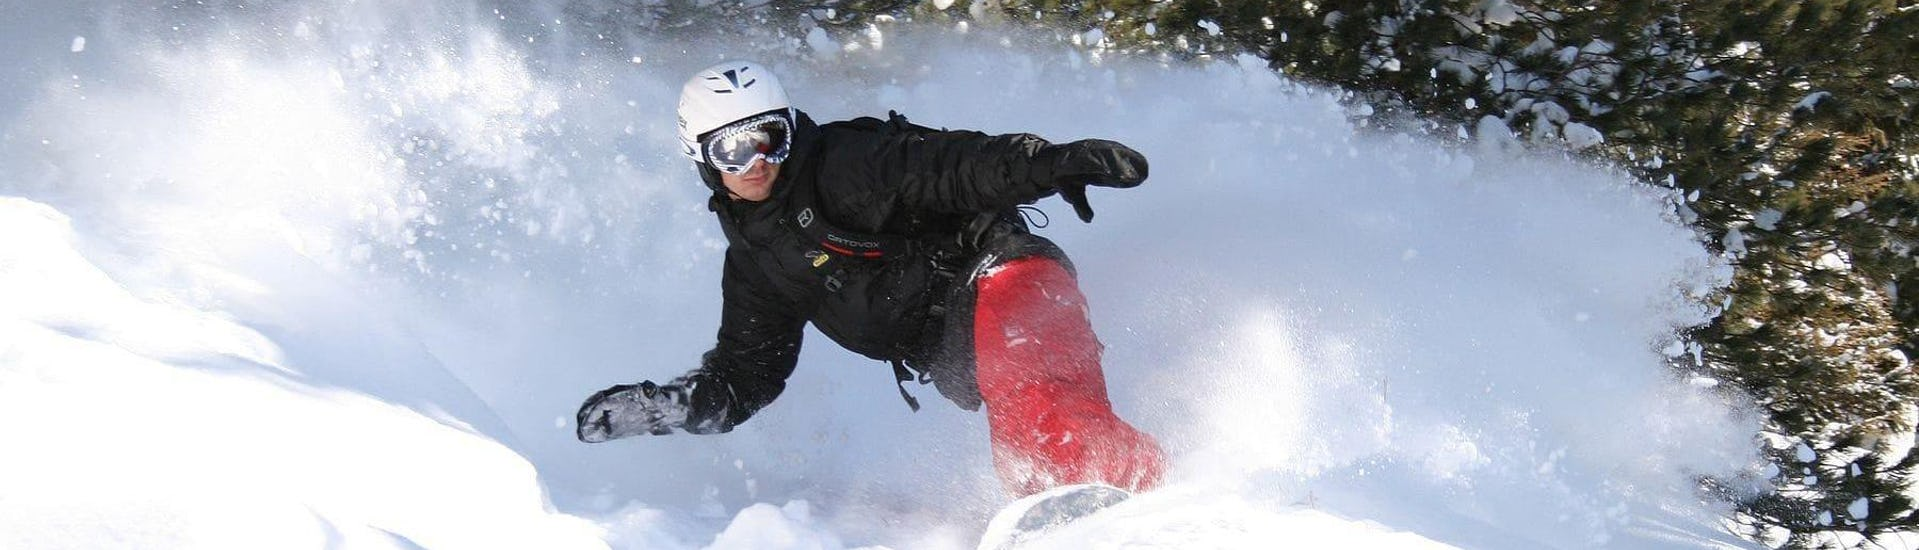 Under the guidance of an experienced instructor form ski school Skischule Arena in Zell am Ziller, a young snowboarder is riding fresh powder during the Private Snowboarding Lessons for Kids & Adults - All Levels.